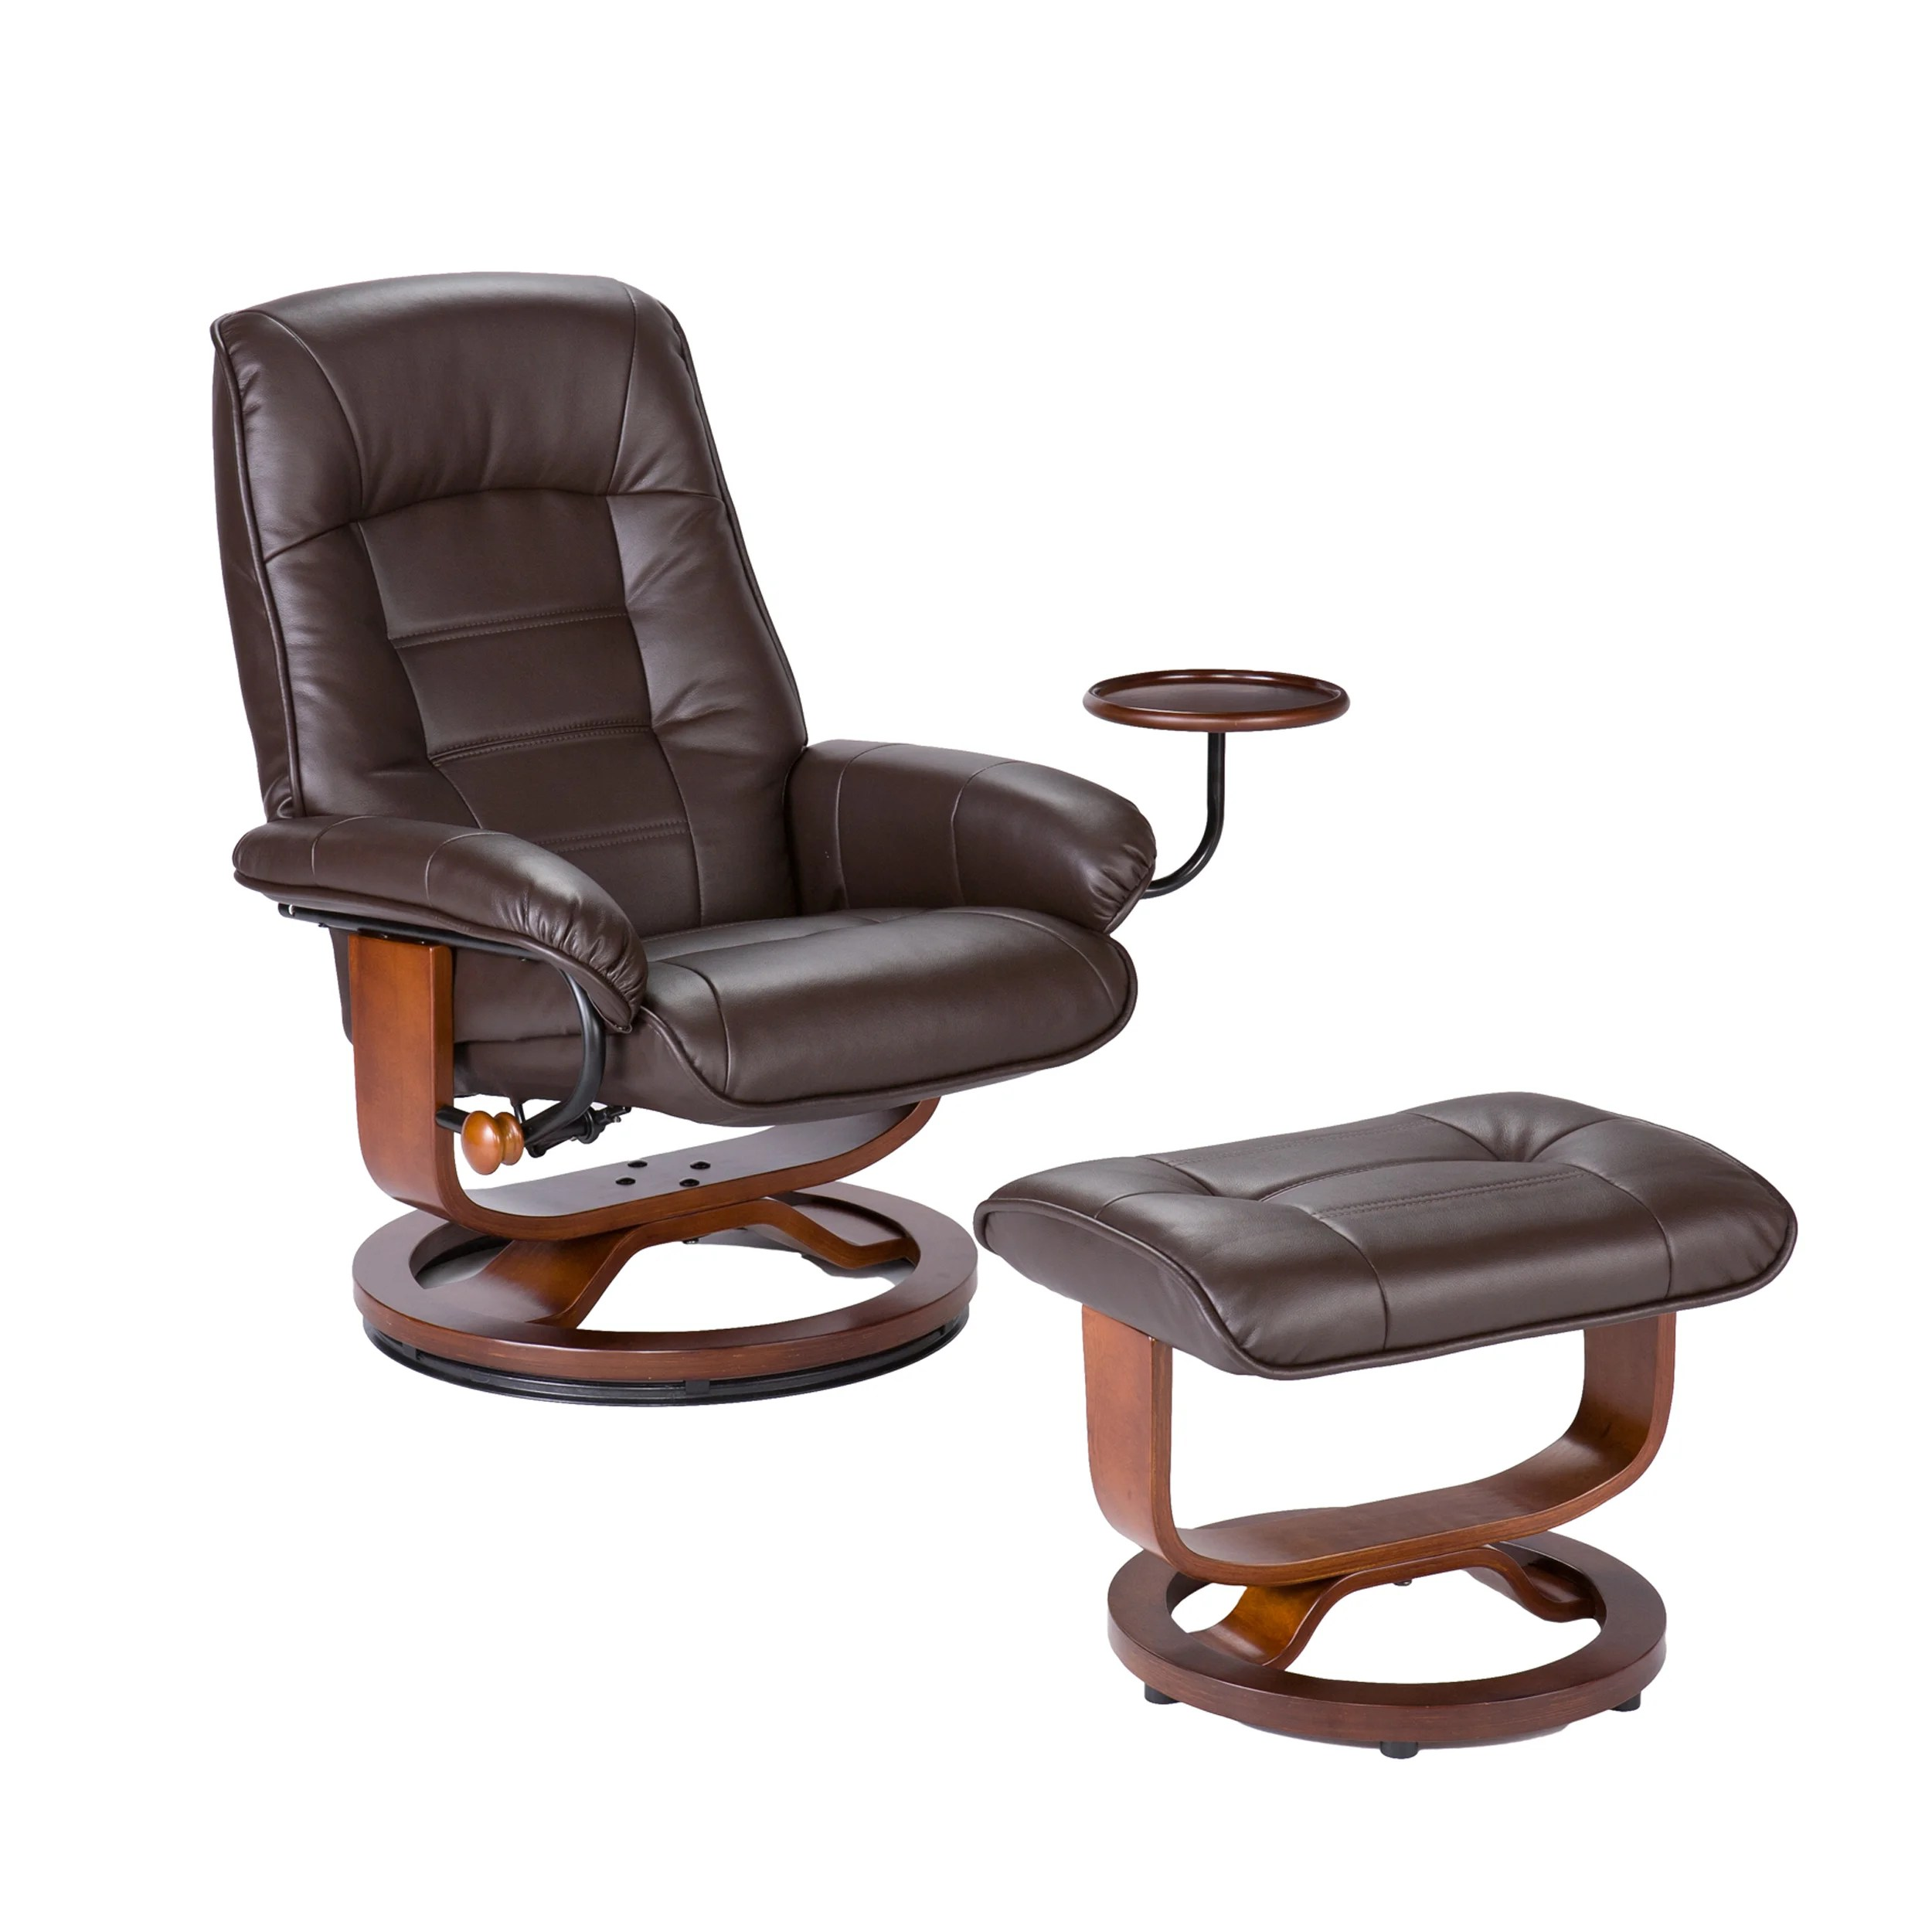 Stressless Magic Signature Sessel Stressless Chair Knock Off Home Design Ideas